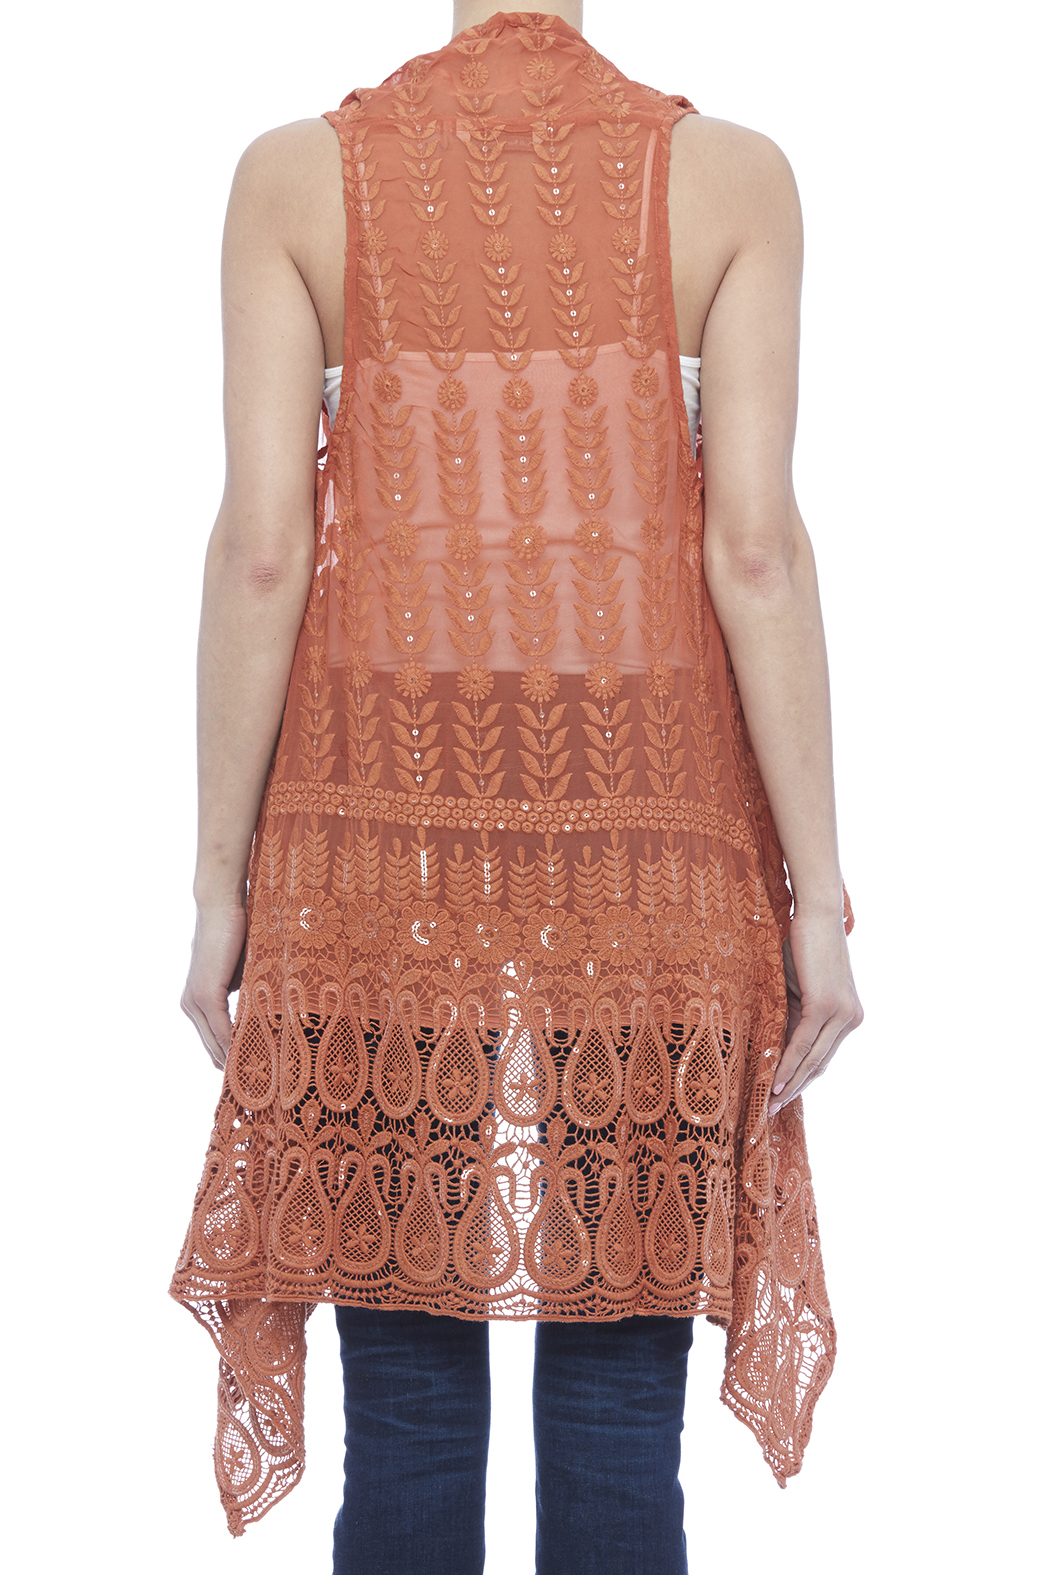 Raj Lotus Rust Lace Embroidered Vest - Back Cropped Image